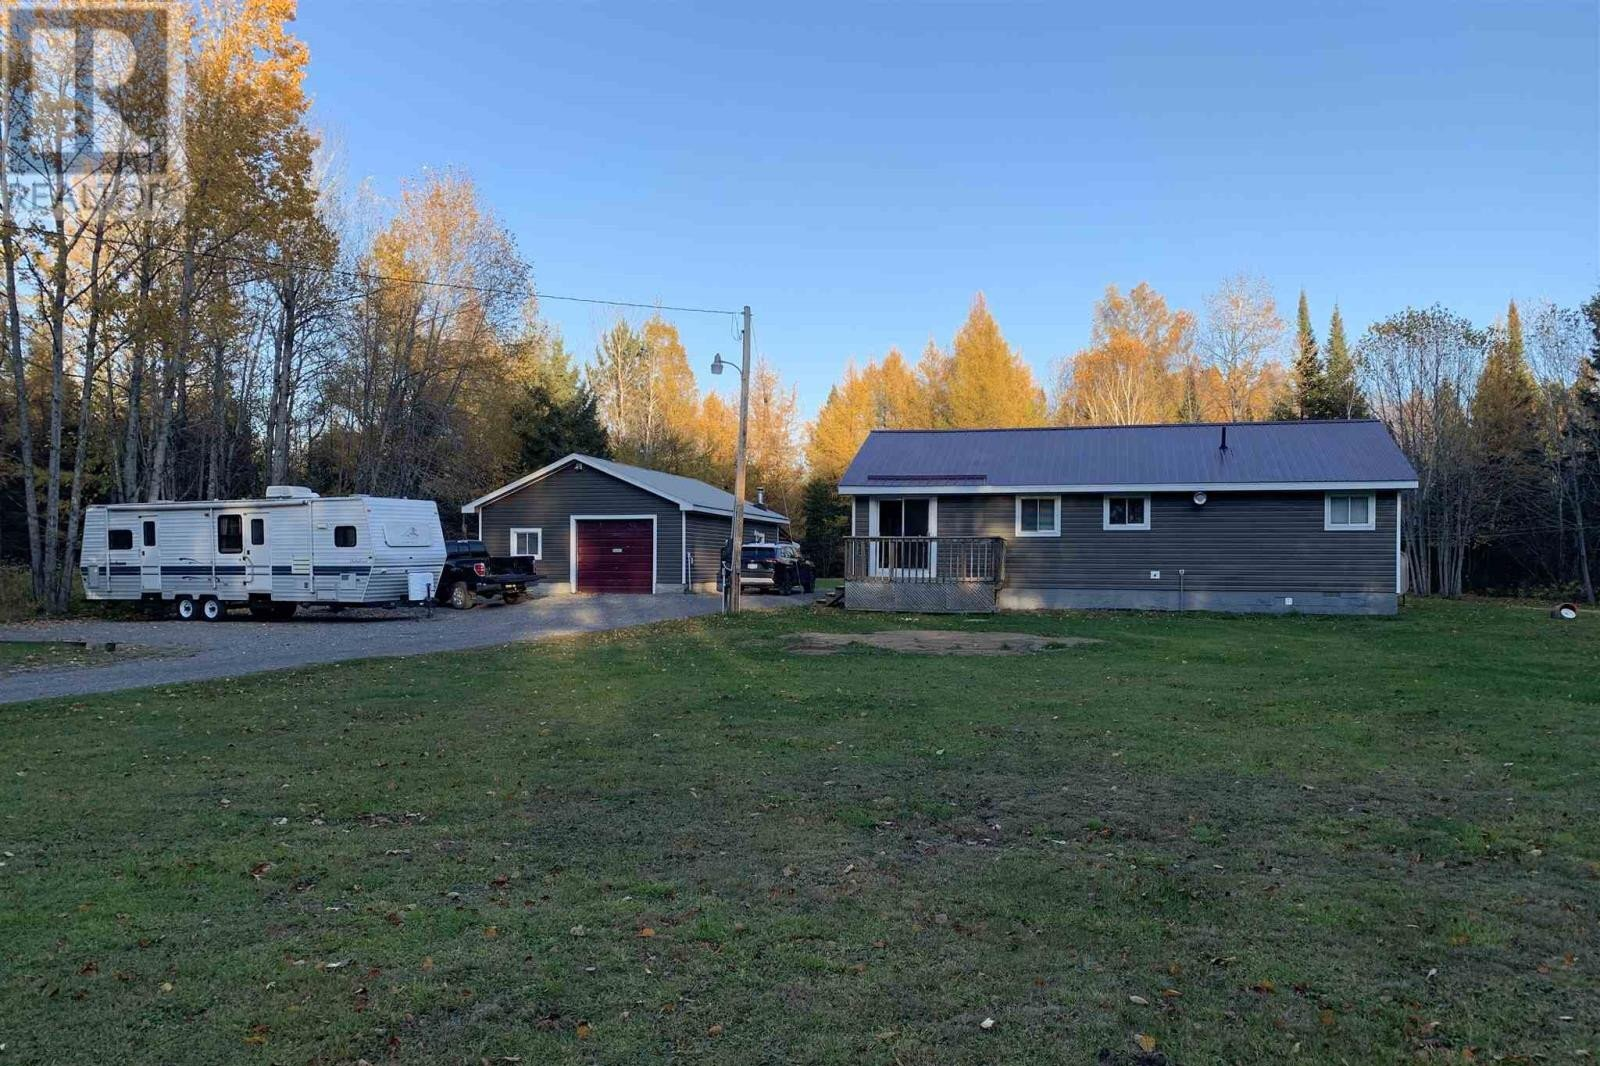 House for sale at 152 Mclean Rd Thessalon Ontario - MLS: SM129062